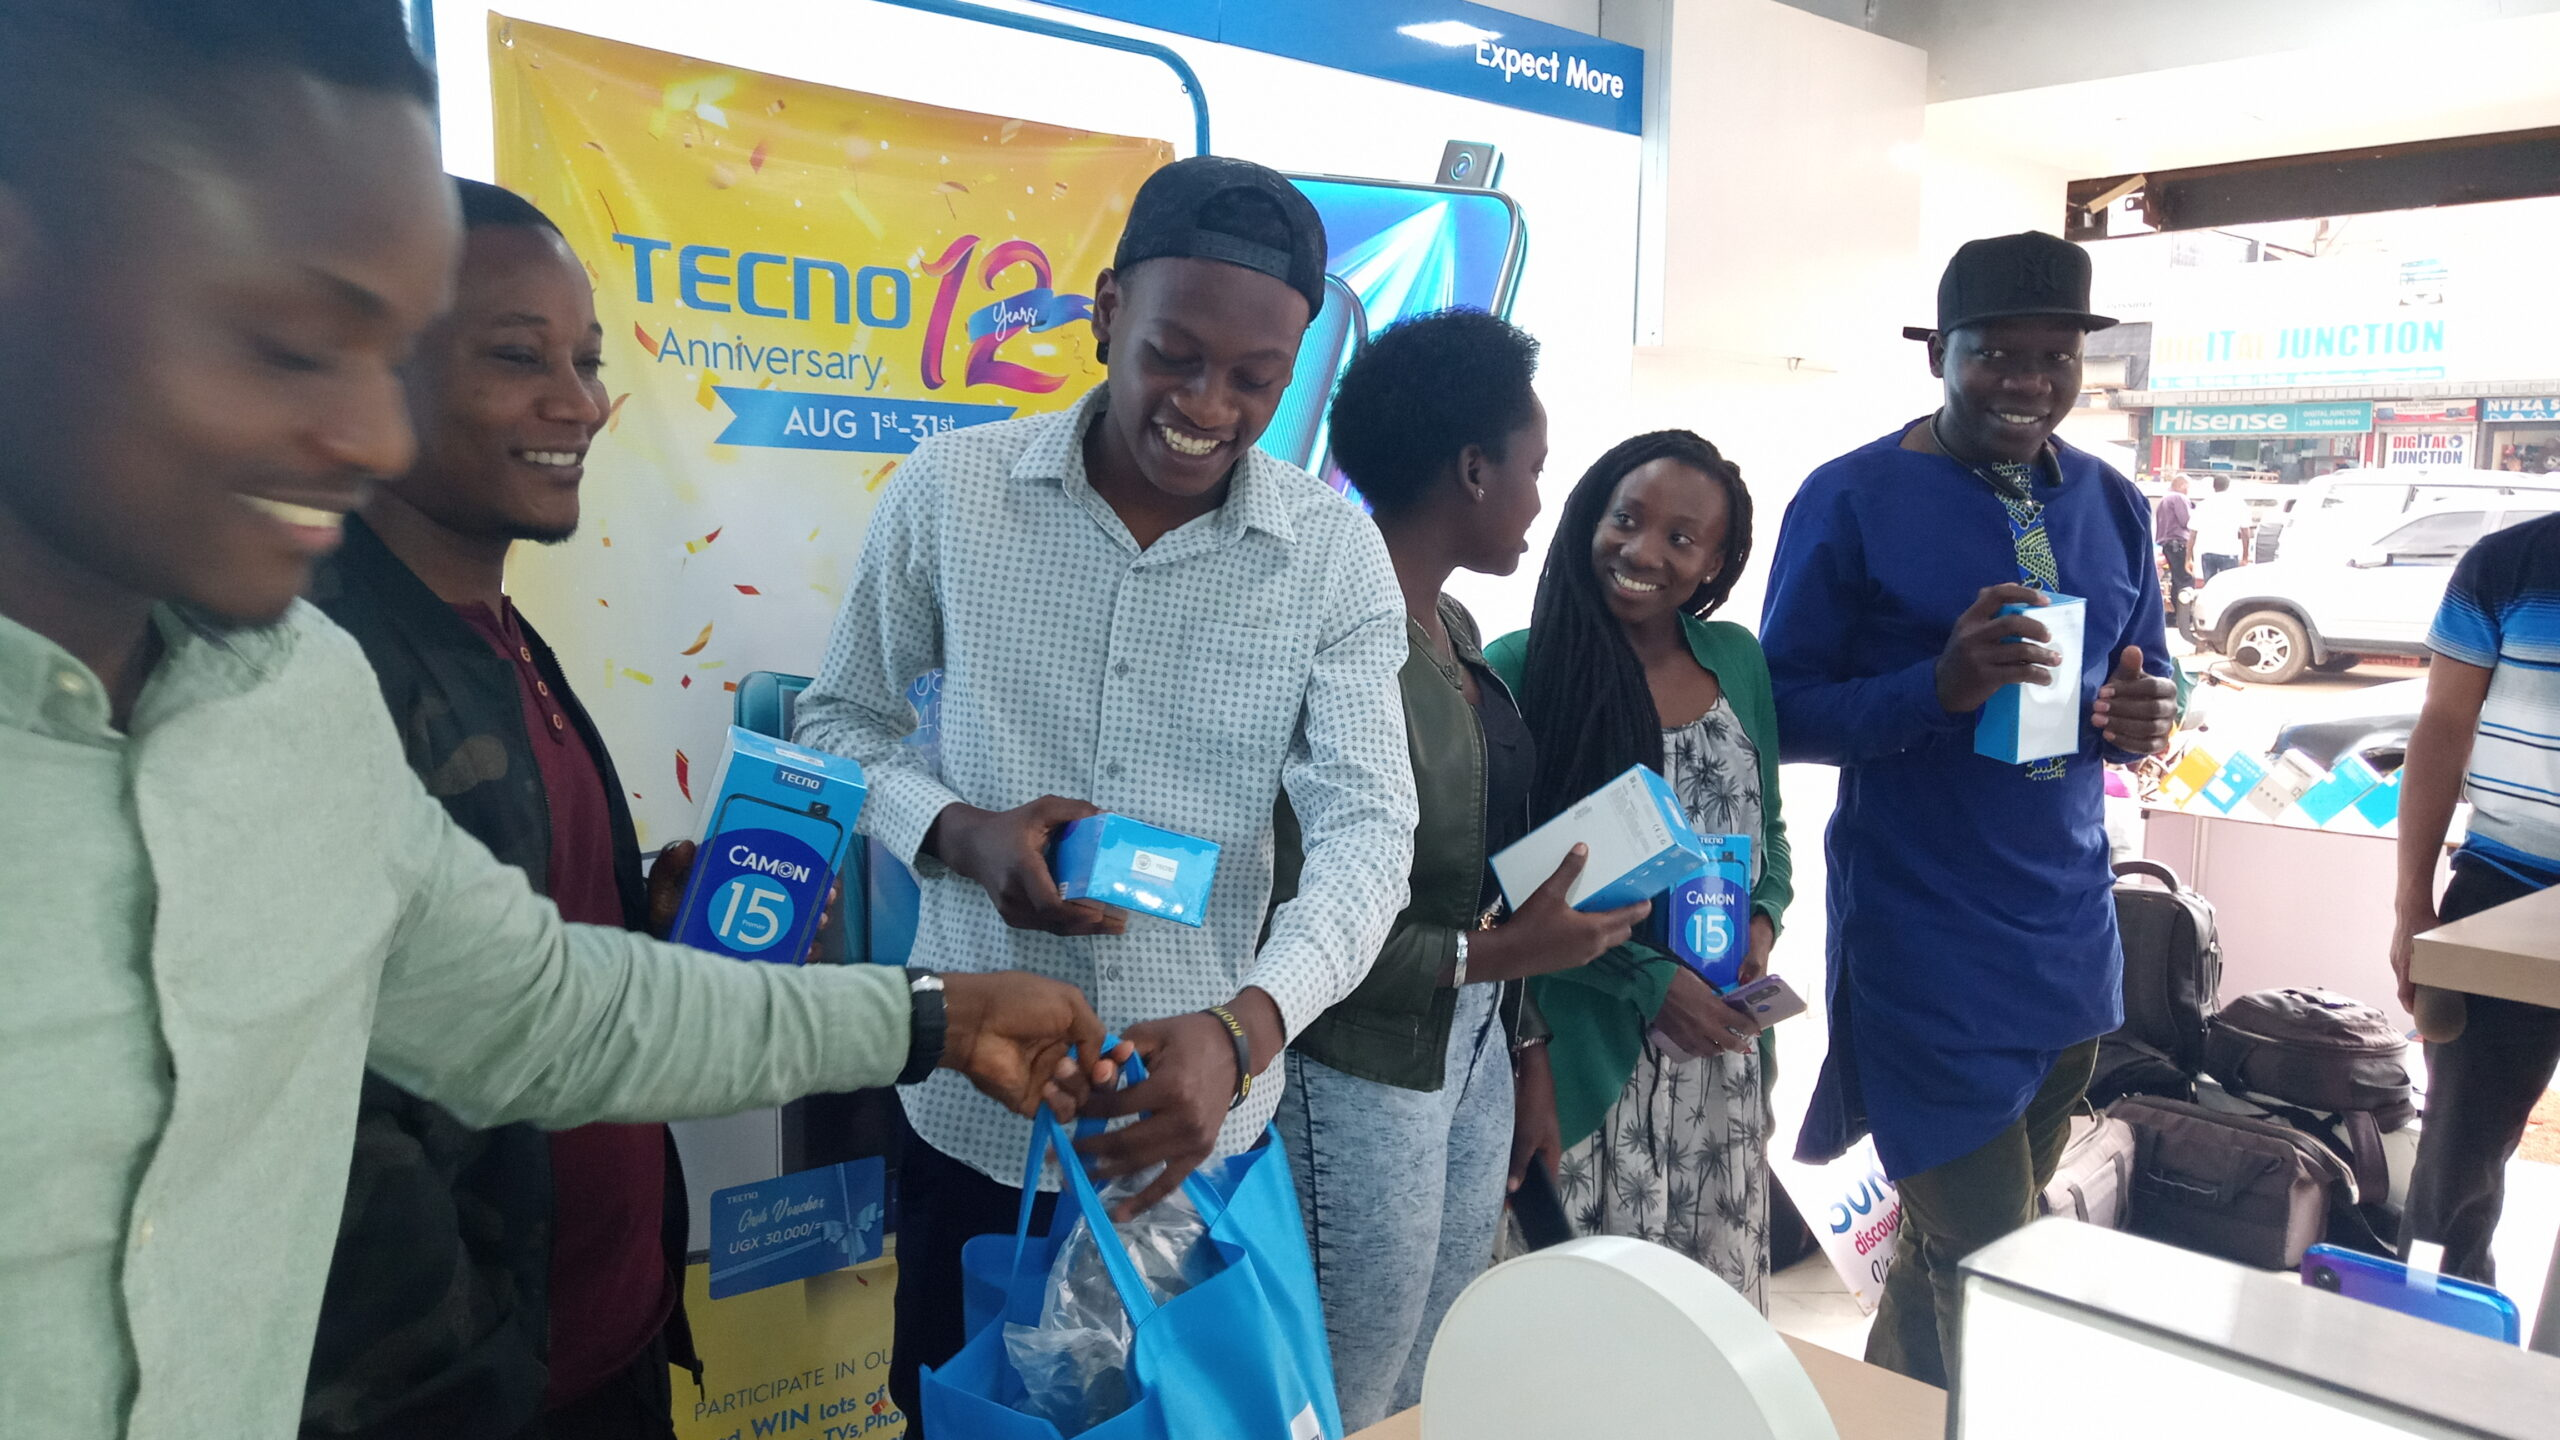 Customers in for Amazing Prizes as Tecno Uganda Celebrates 12 Years Anniversary - Newslibre